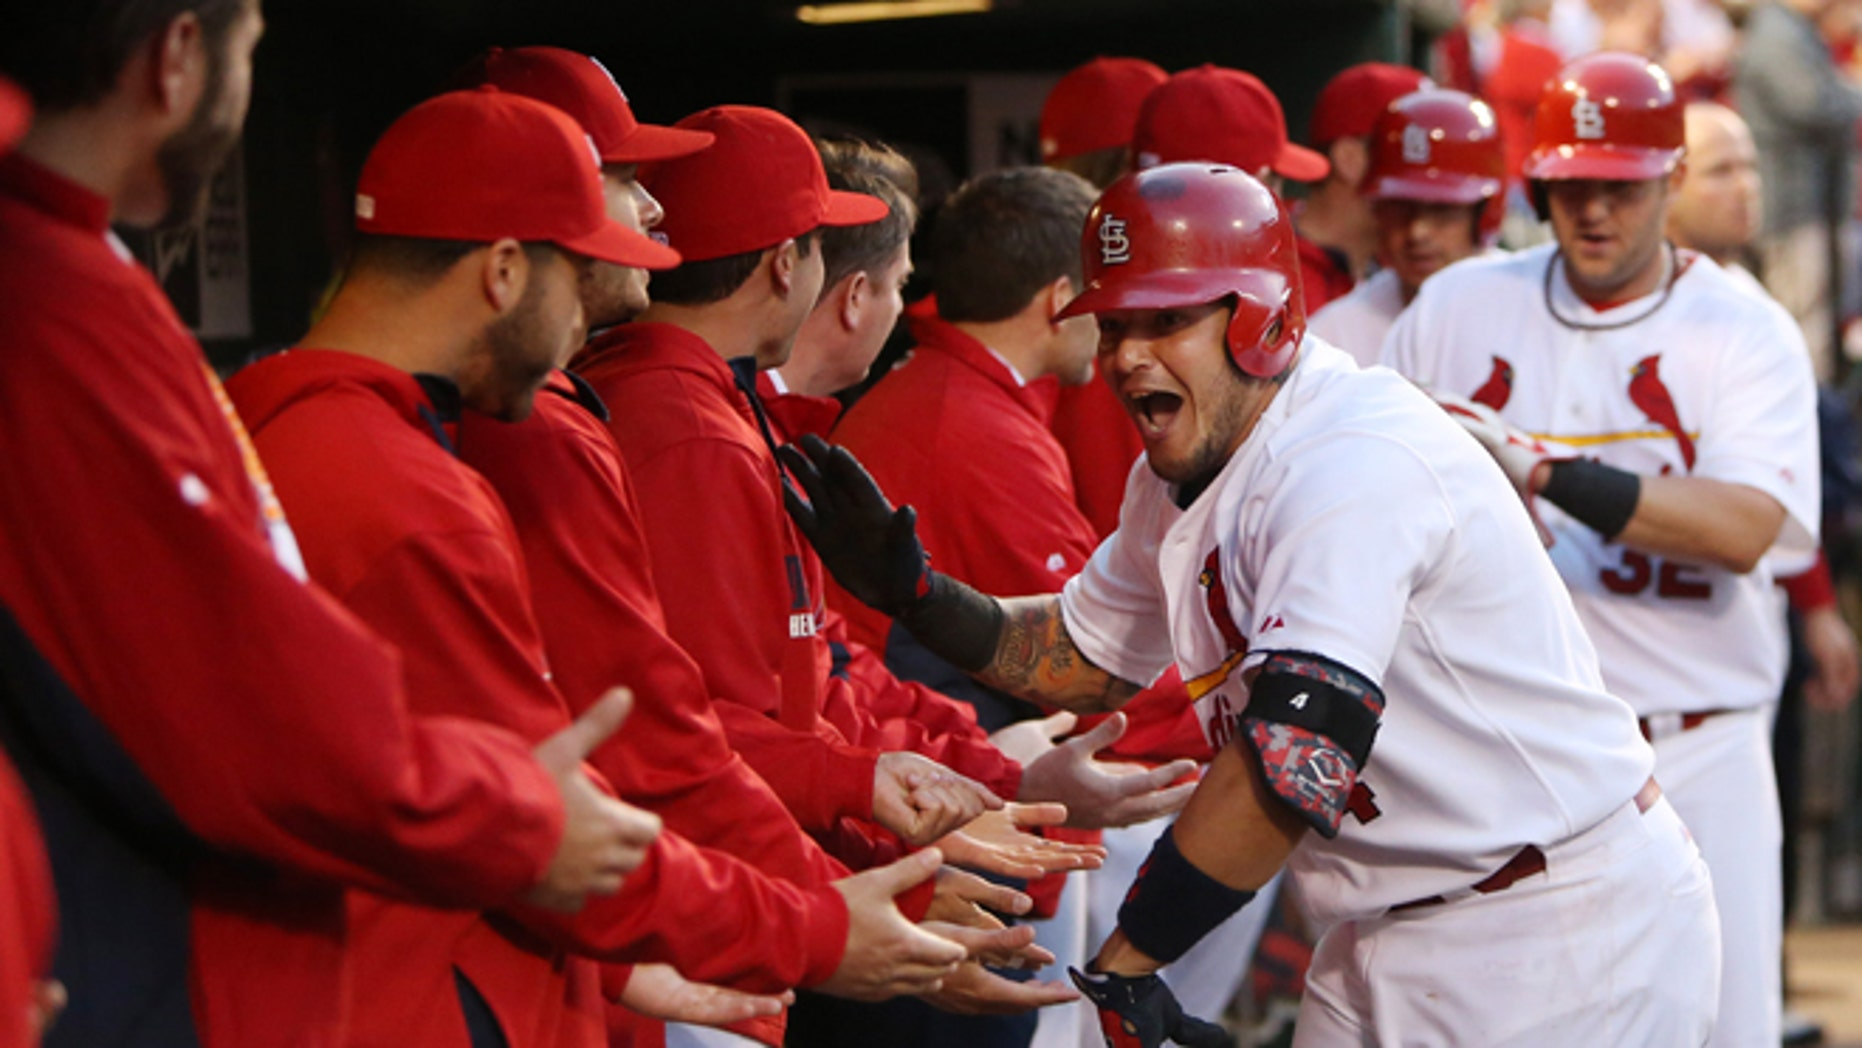 St. Louis Cardinals' Yadier Molina celebrates with teammates in the dugout after hitting a three-run home run against the Milwaukee Brewers in the first inning of a baseball game Tuesday, April 29, 2014, in St. Louis. The Brewers won 5-4 in 11 innings. (AP Photo/St. Louis Post-Dispatch, Chris Lee) EDWARDSVILLE OUT  ALTON OUT